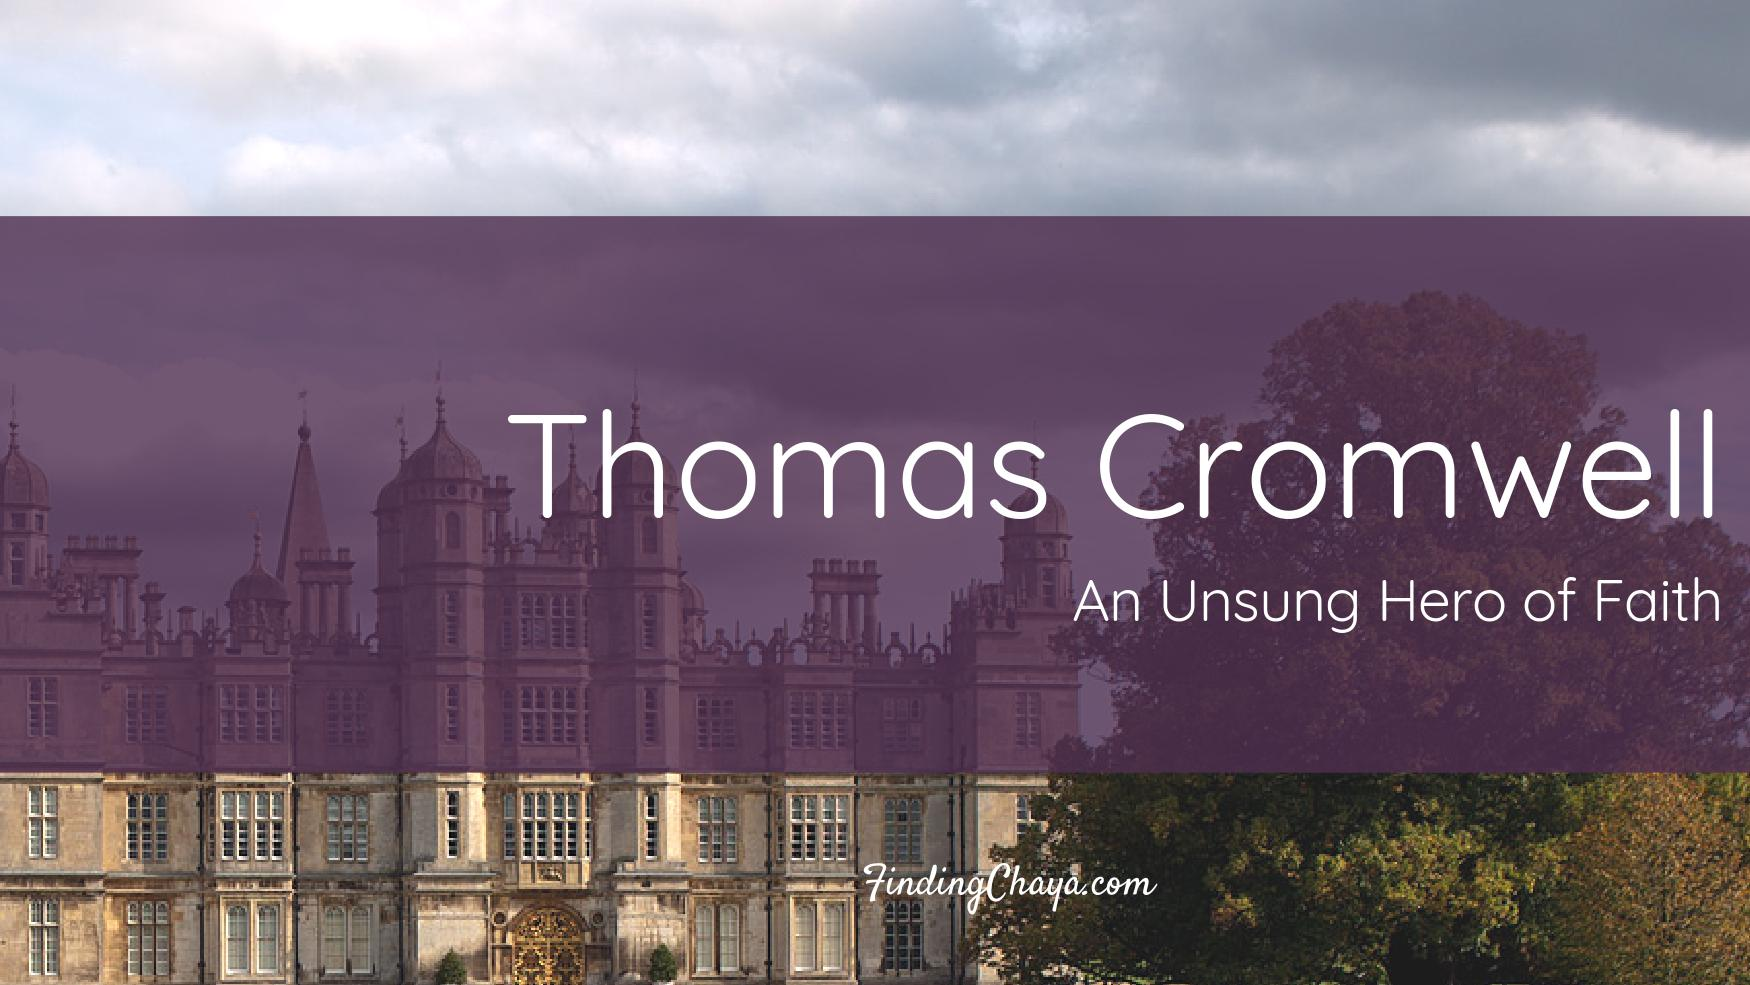 Thomas Cromwell: An Unsung Hero of Faith